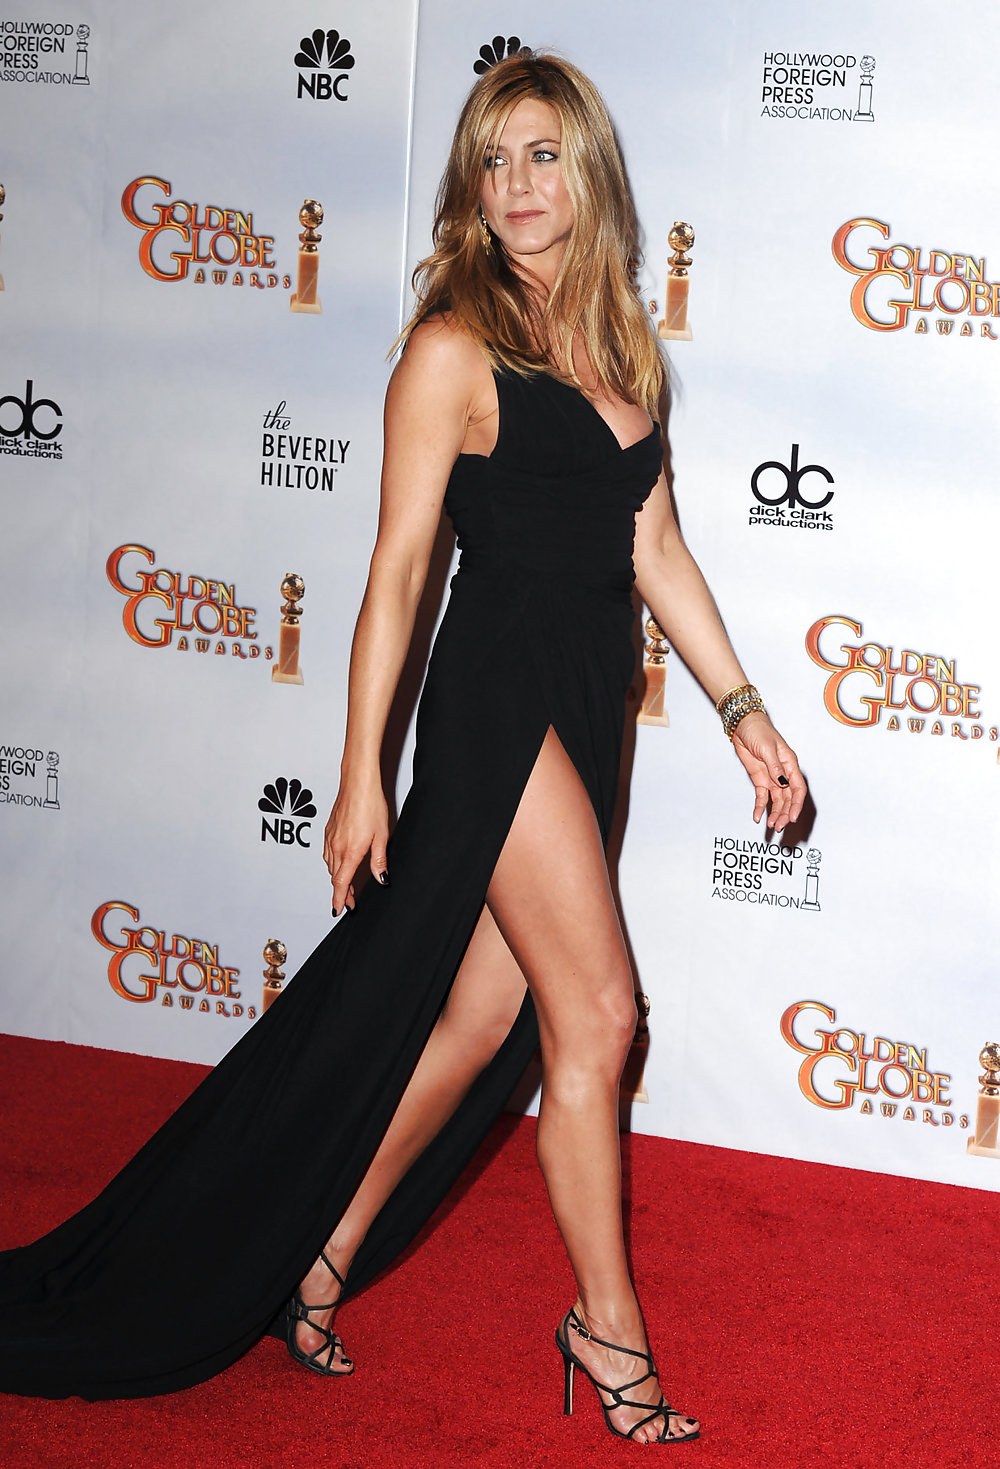 Jennifer Aniston's Hot Legs